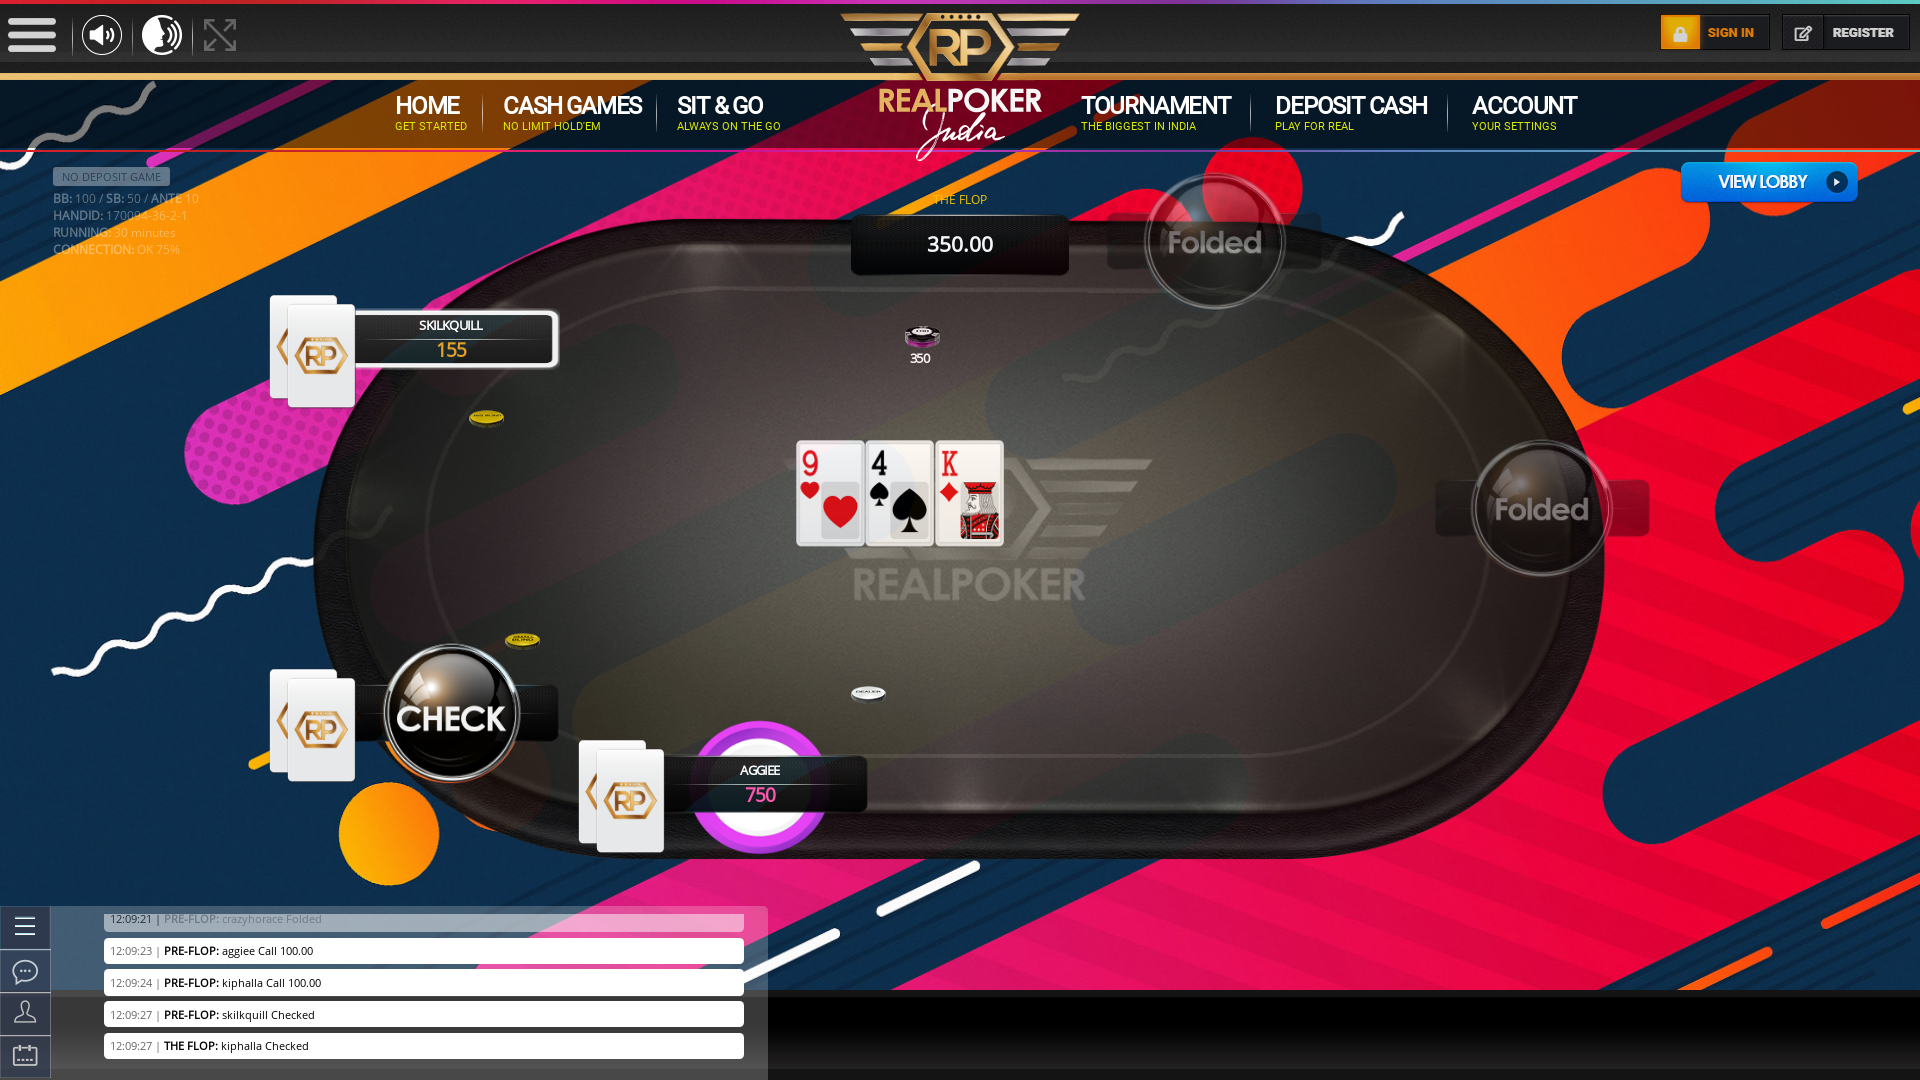 Quepem Goa online poker game on a 10 player table in the 30th minute